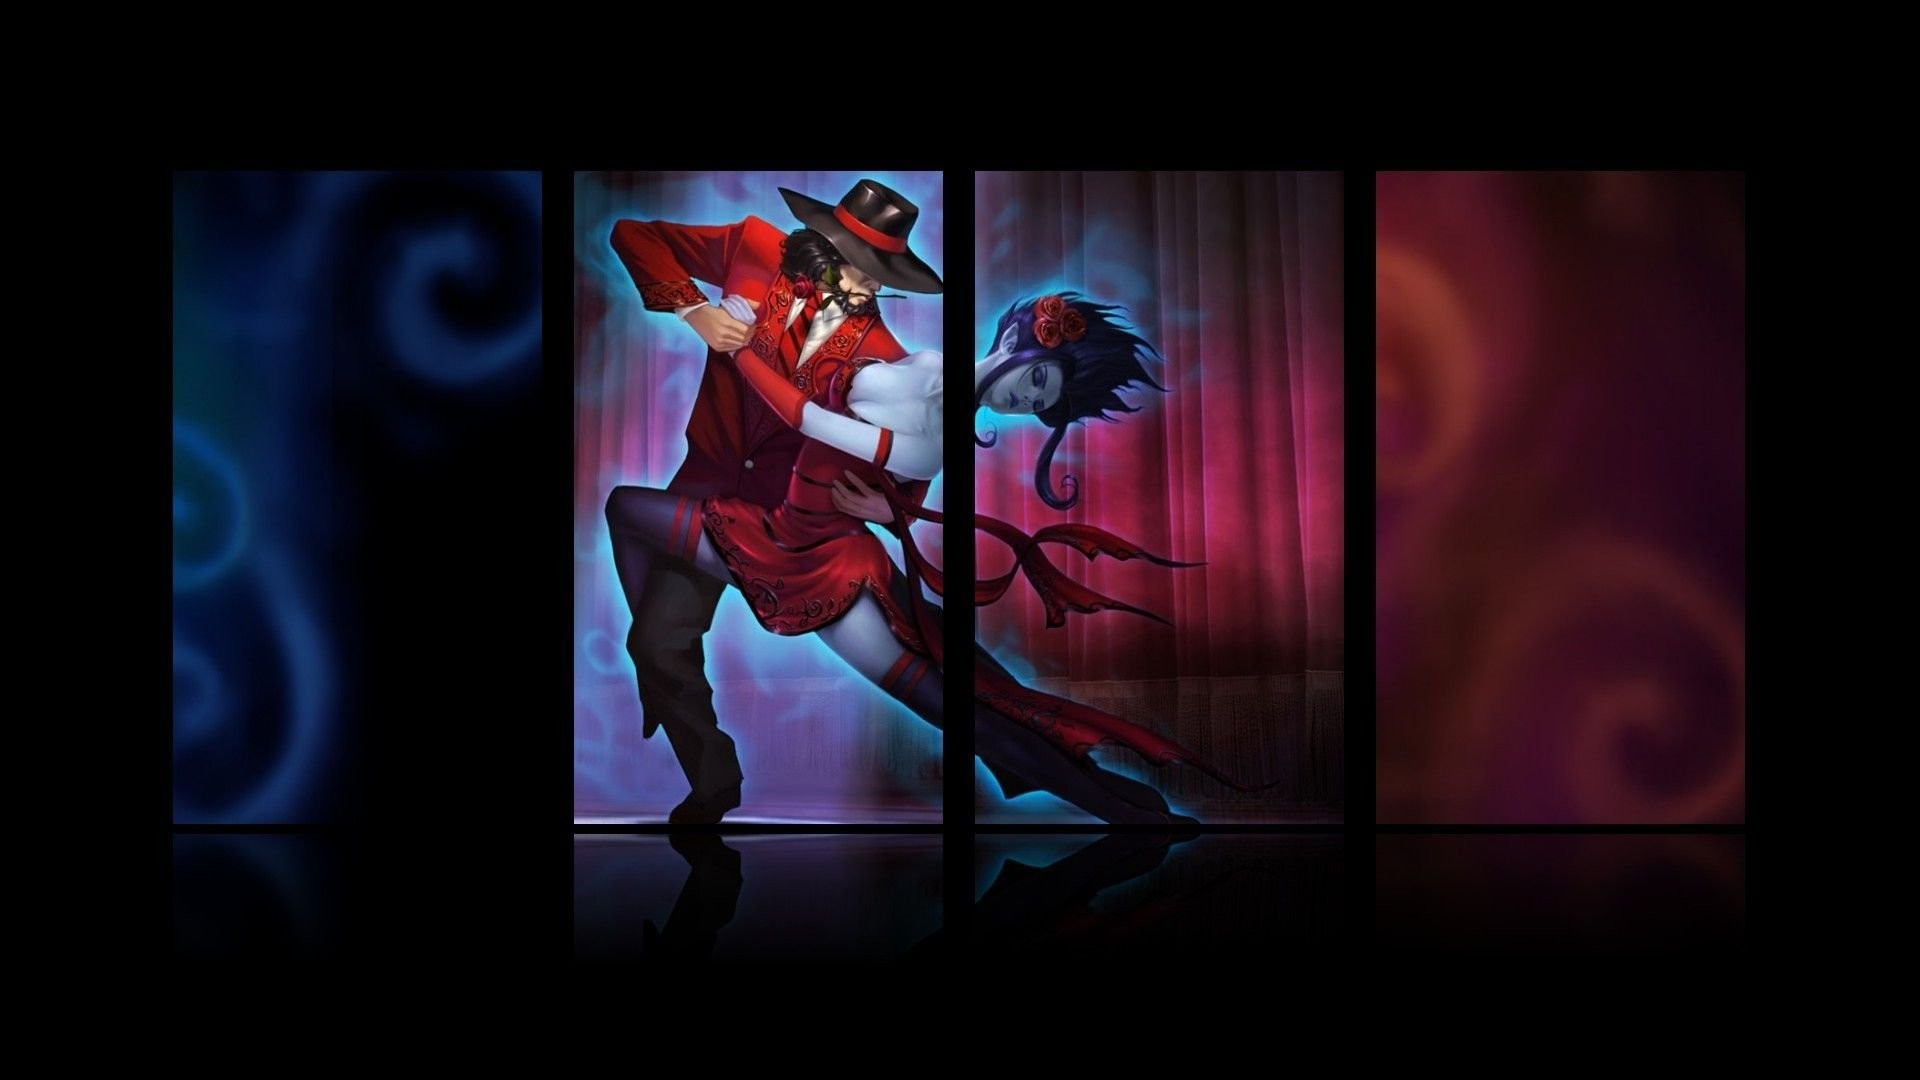 1920x1080 Evelynn The Widowmaker And Twisted Fate